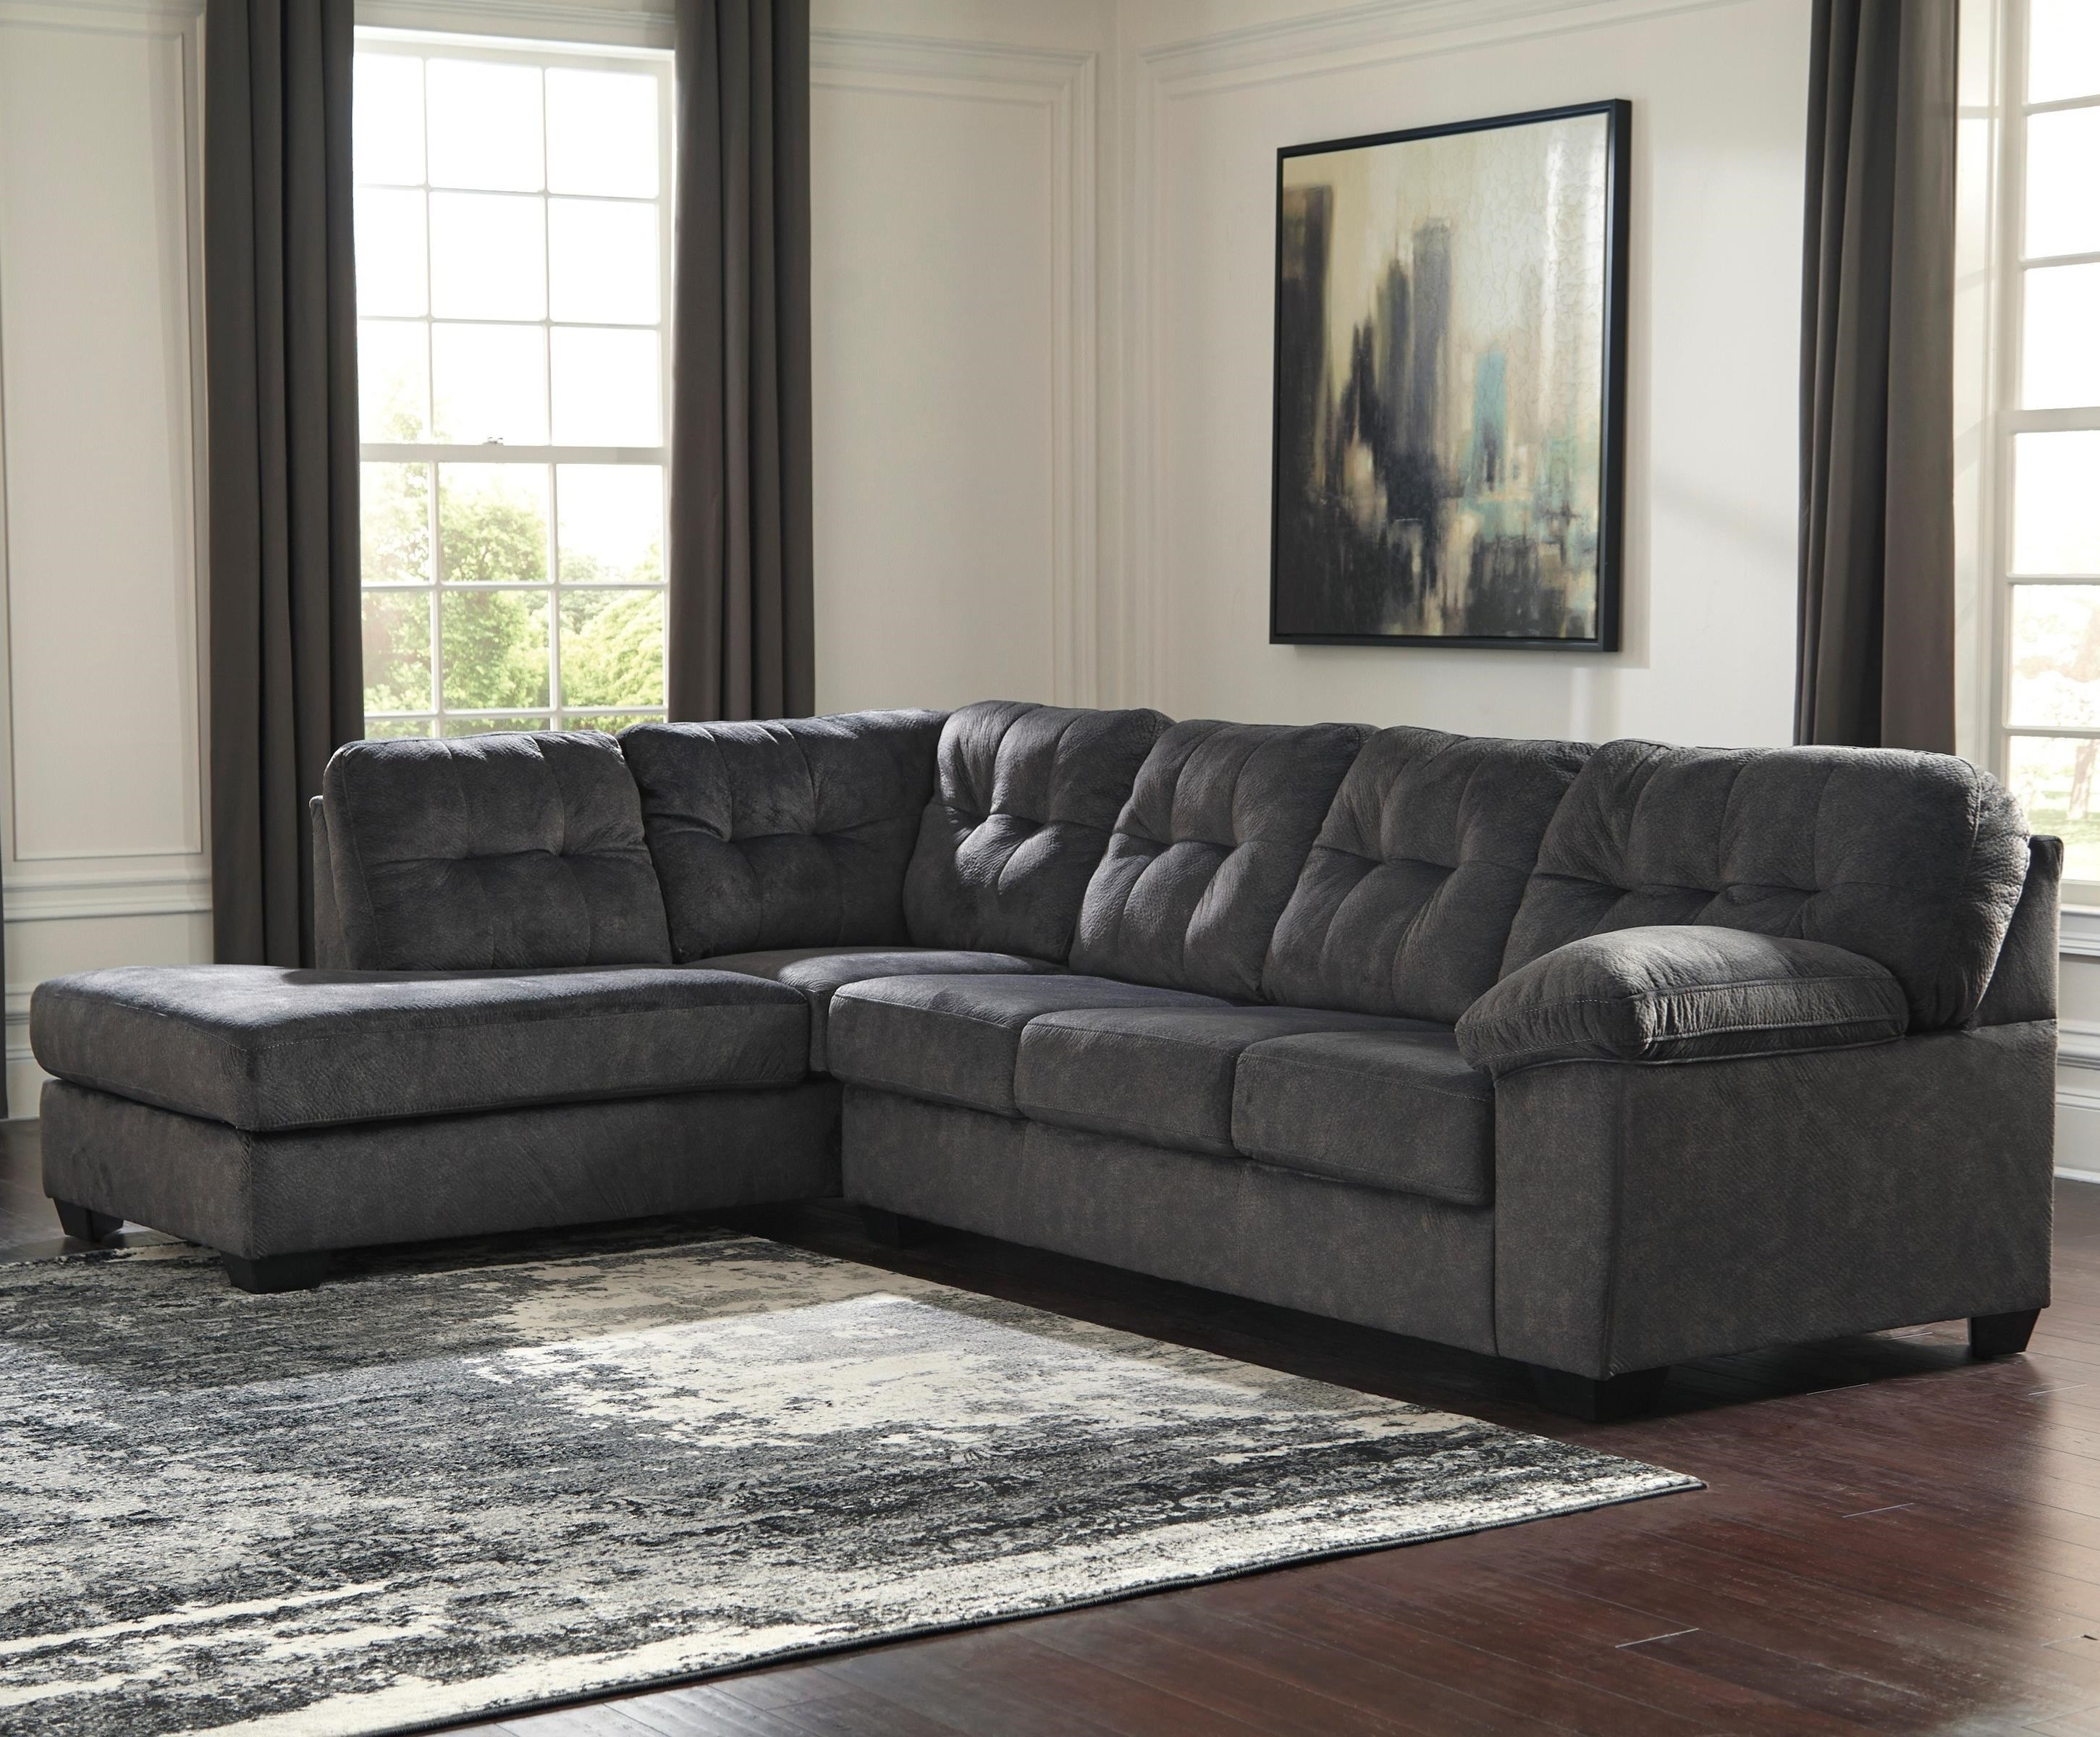 Signature Design By Ashley Accrington Sectional With Left Chaise U0026 Memory  Foam Queen Sleeper Mattress